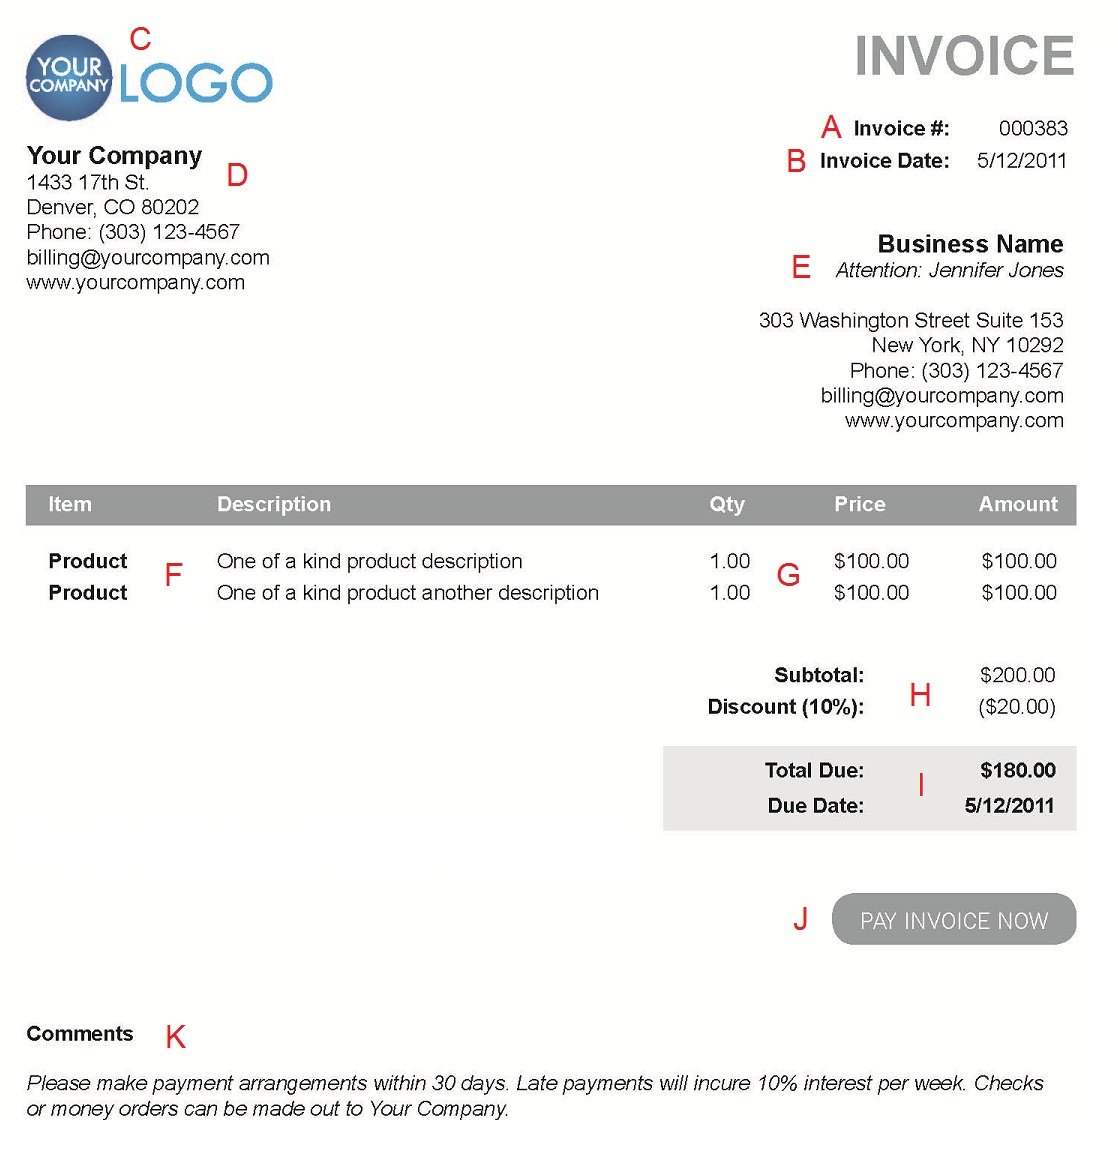 Occupyhistoryus  Fascinating The  Different Sections Of An Electronic Payment Invoice With Engaging A  With Easy On The Eye What Is The Best Invoice Software Also How To Make An Invoice On Ebay In Addition Format For Invoice And Invoice Template Word  As Well As Writing An Invoice For Freelance Work Additionally Adams Invoices From Paysimplecom With Occupyhistoryus  Engaging The  Different Sections Of An Electronic Payment Invoice With Easy On The Eye A  And Fascinating What Is The Best Invoice Software Also How To Make An Invoice On Ebay In Addition Format For Invoice From Paysimplecom